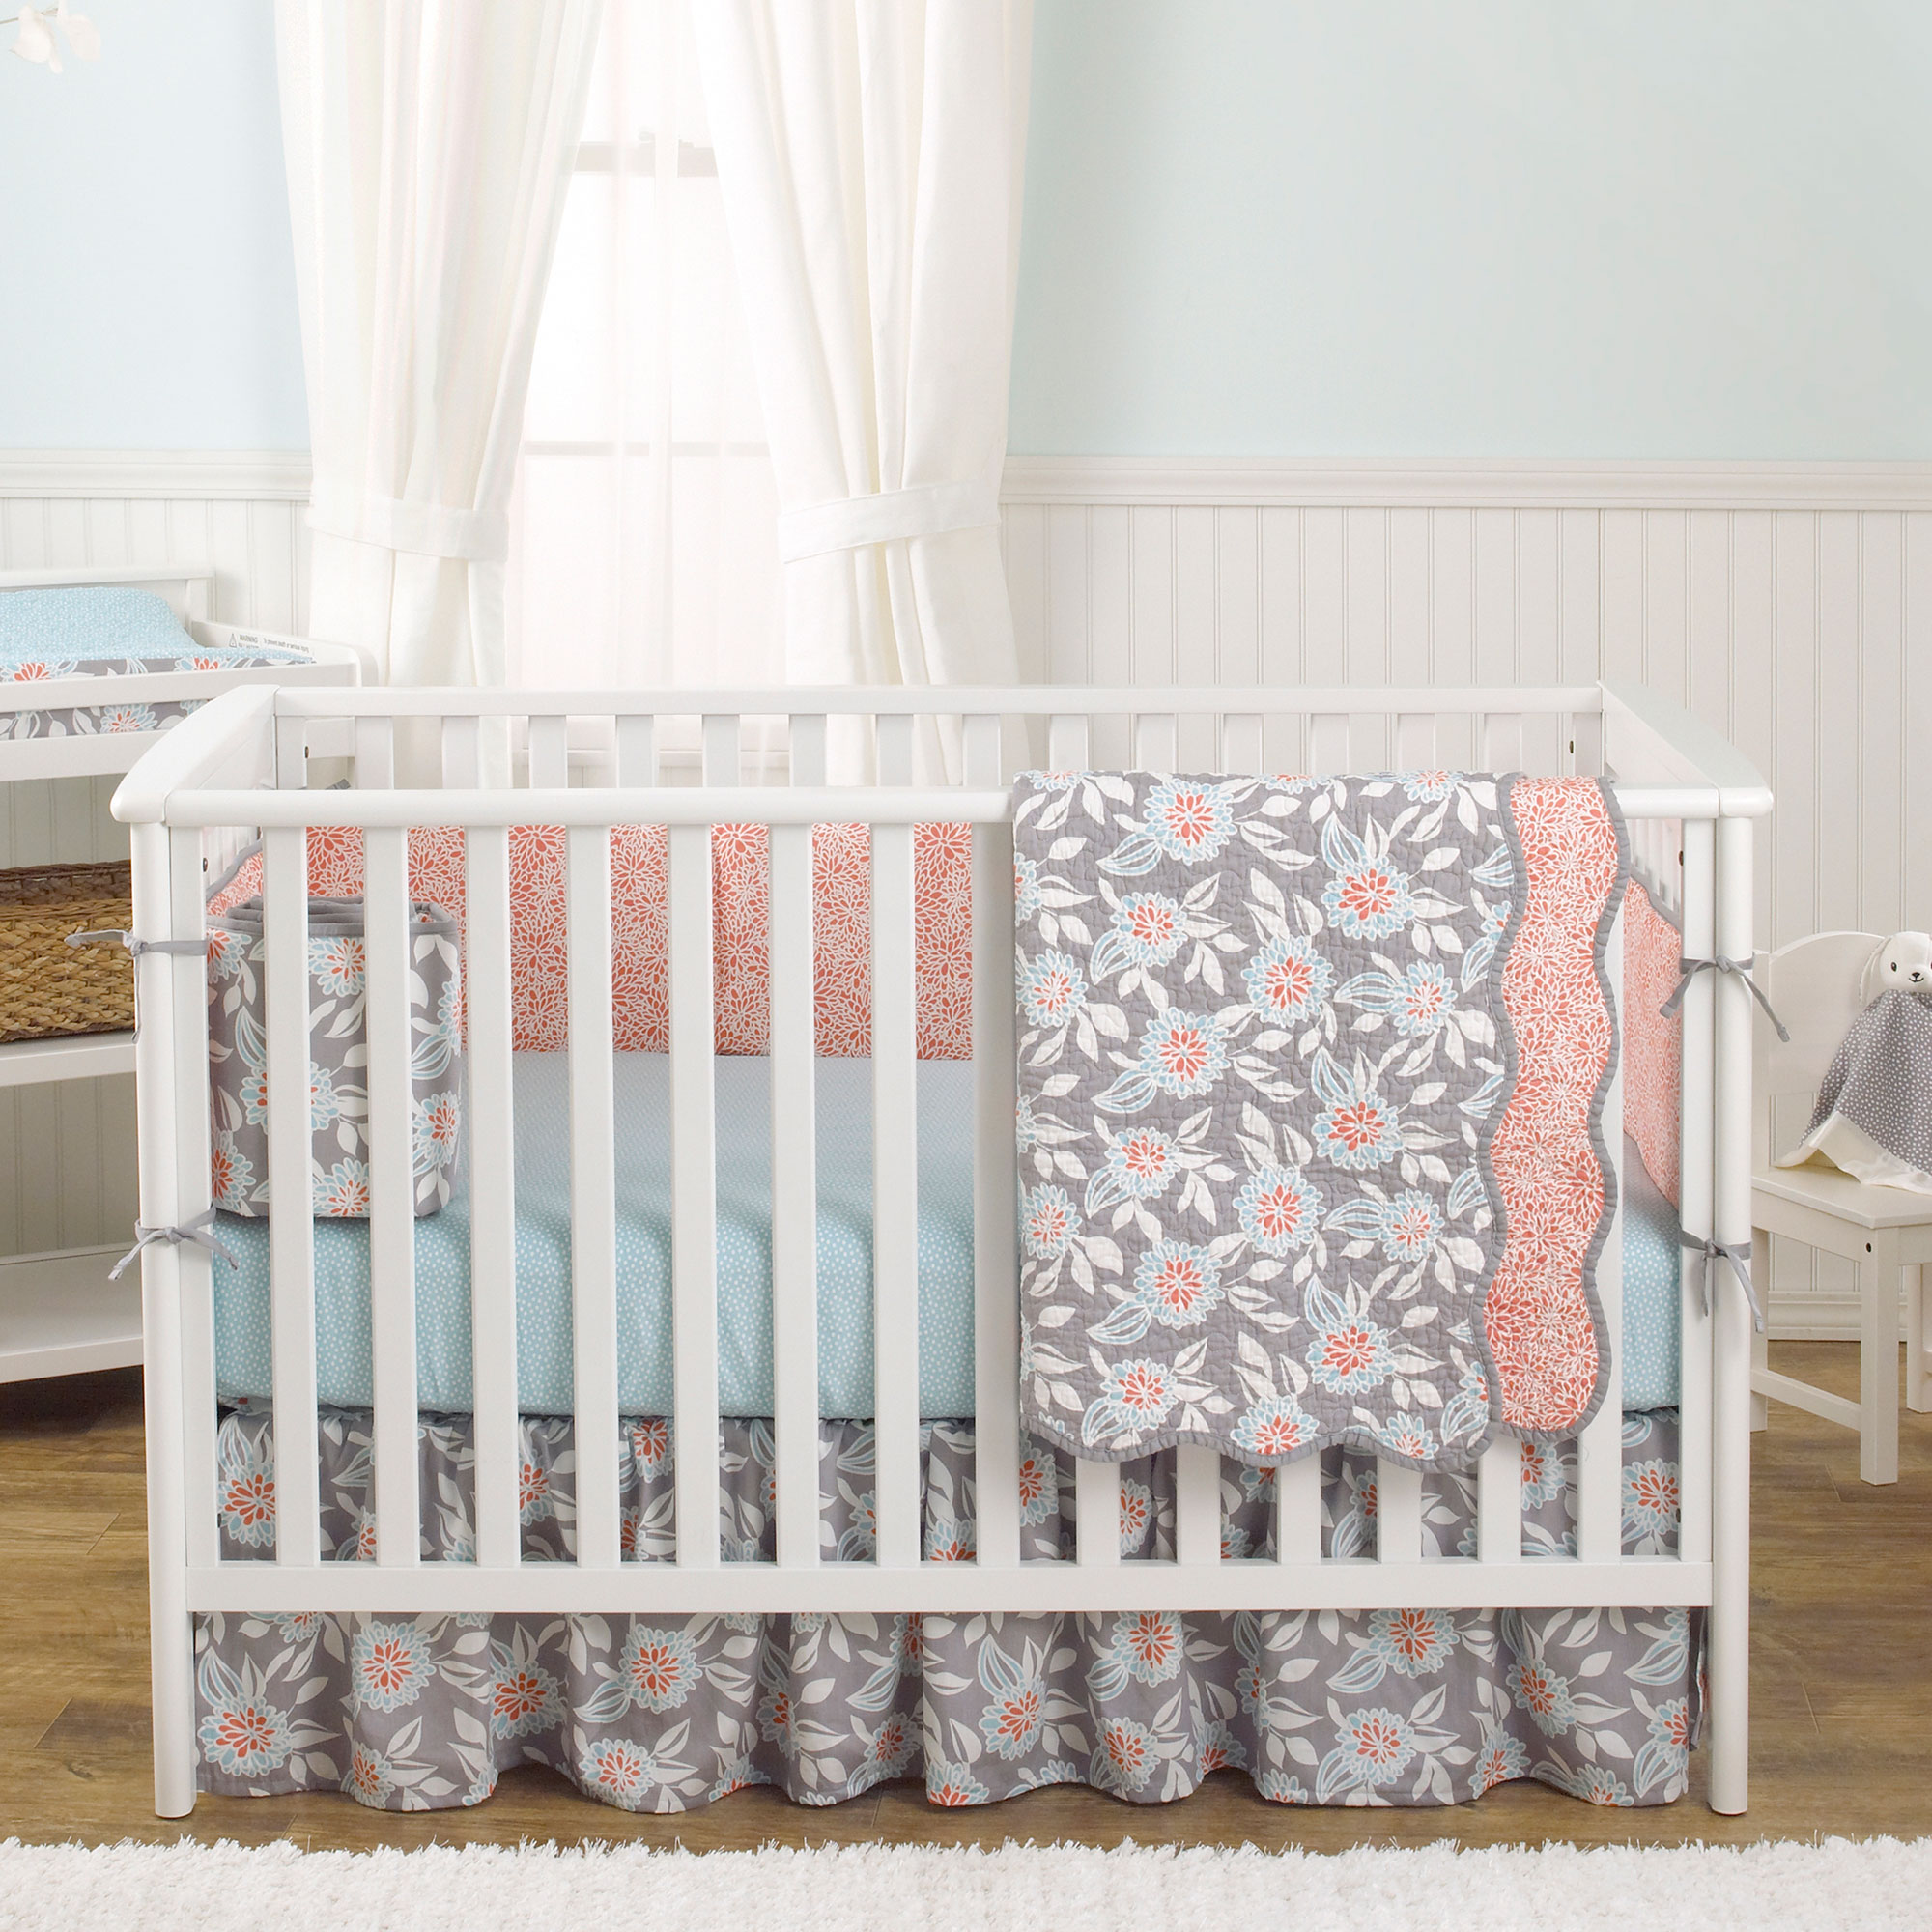 Balboa Baby 4 Piece Baby Girl Crib Bedding Set - Grey and Coral Floral Designs on 100% Cotton - Grey and Aqua Dahlia